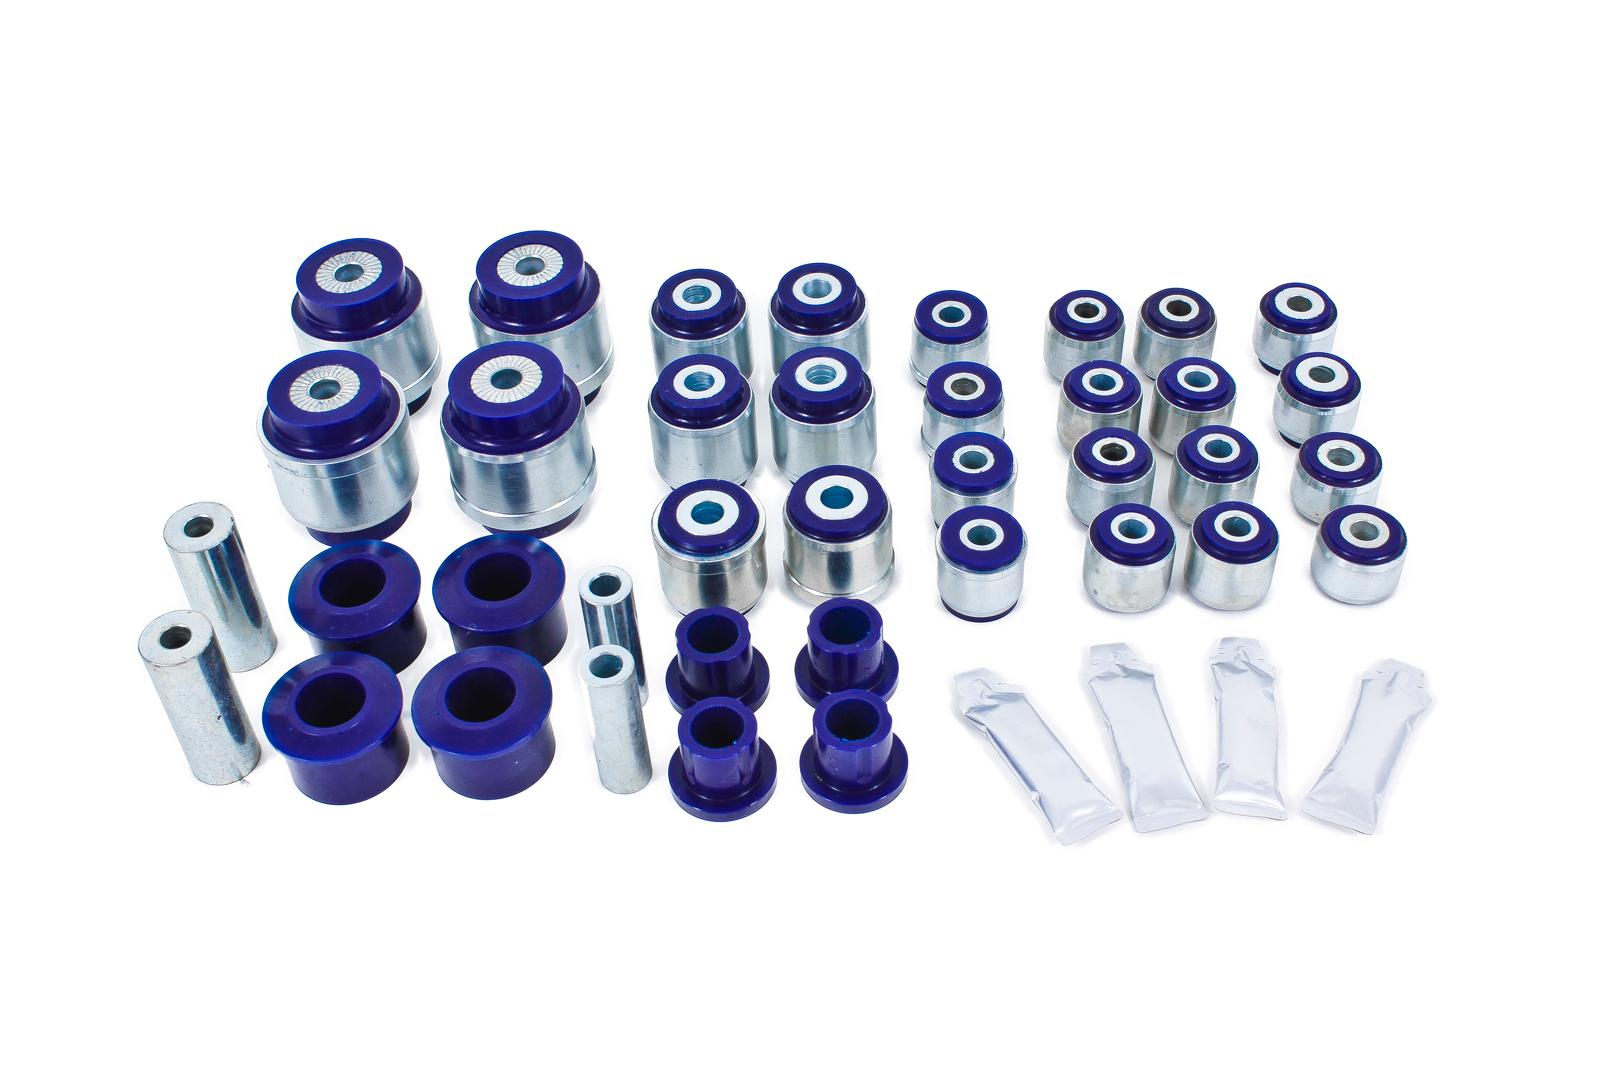 2008+ Dodge Challenger BMR Suspension Super Pro Complete Suspension Bushing Kit - Non Adjustable